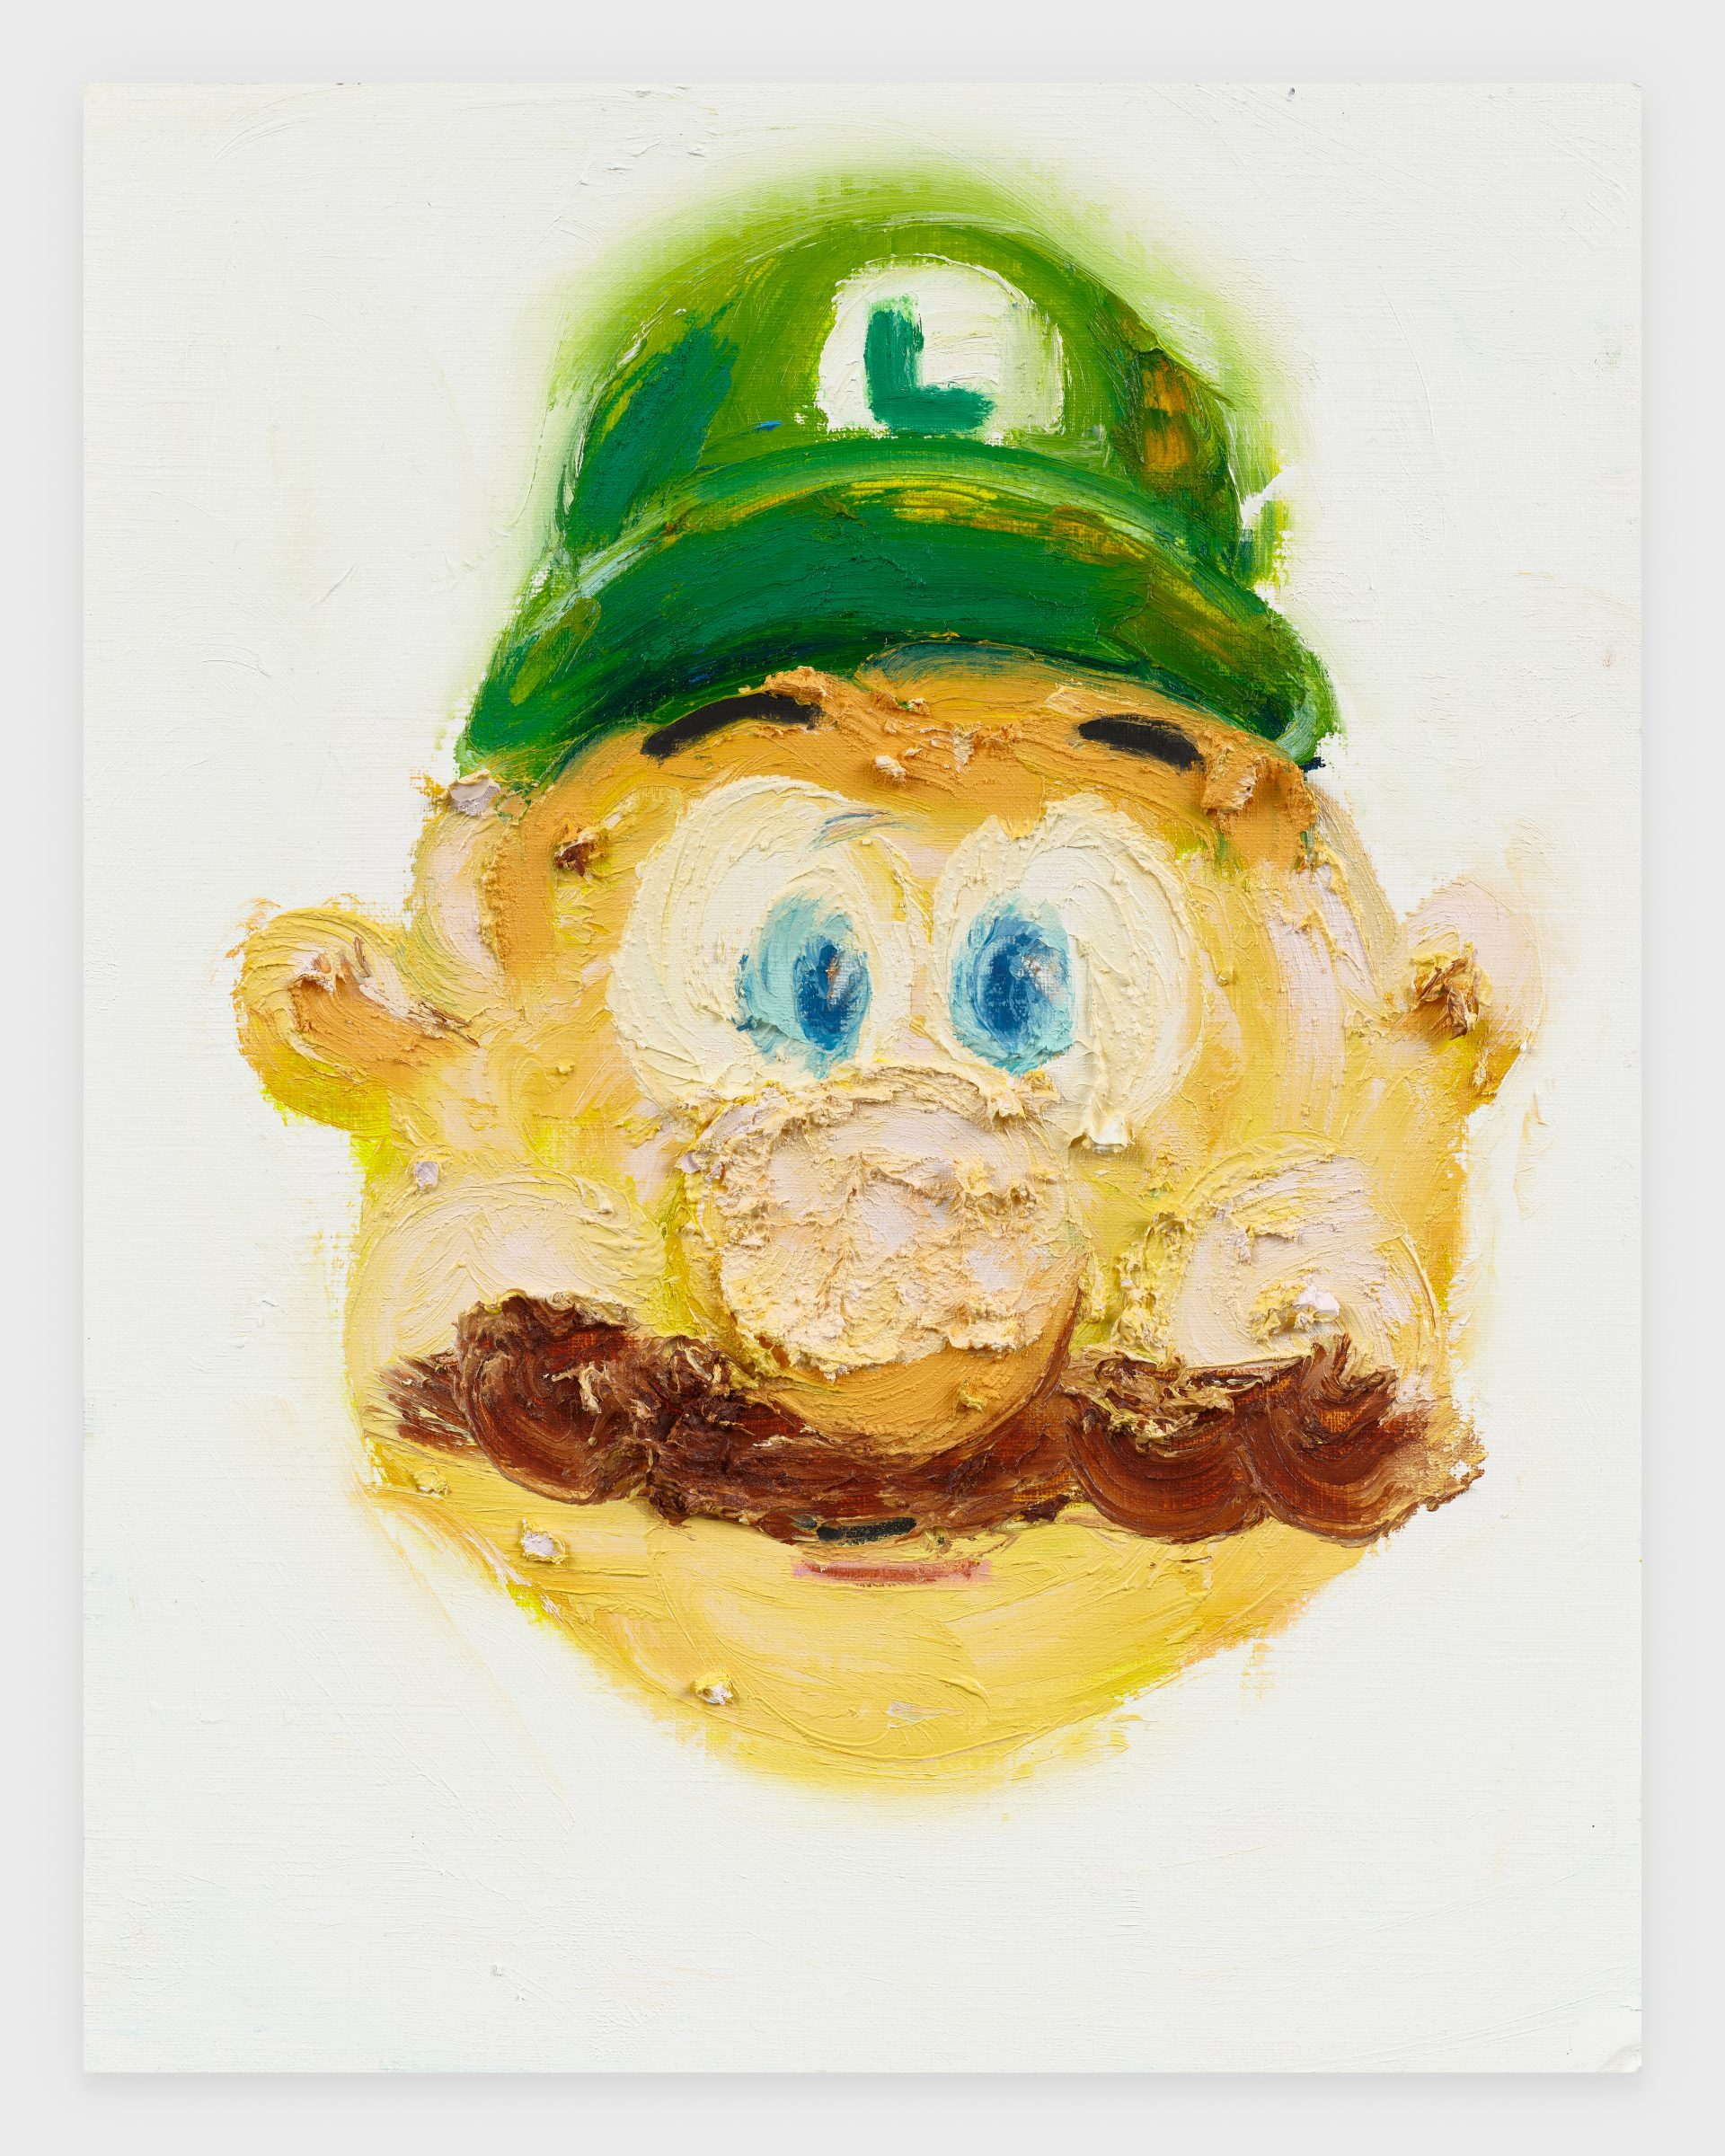 Luigi, 2020, Oil stick on archival paper, 11 x 14 inches